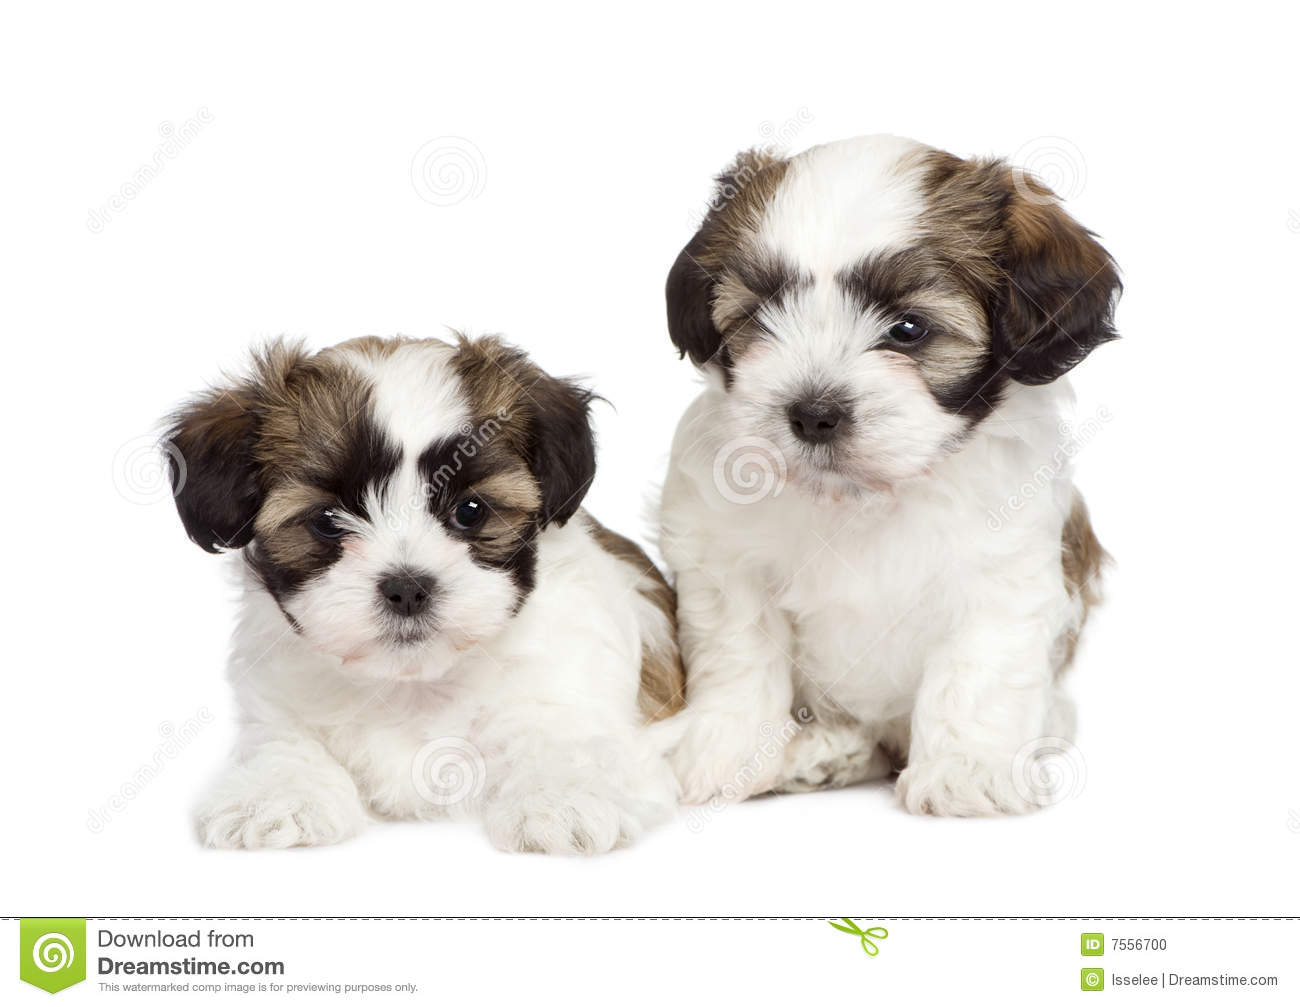 Puppy mixed-Breed Dog between Shih Tzu and maltese dog (7 weeks) in